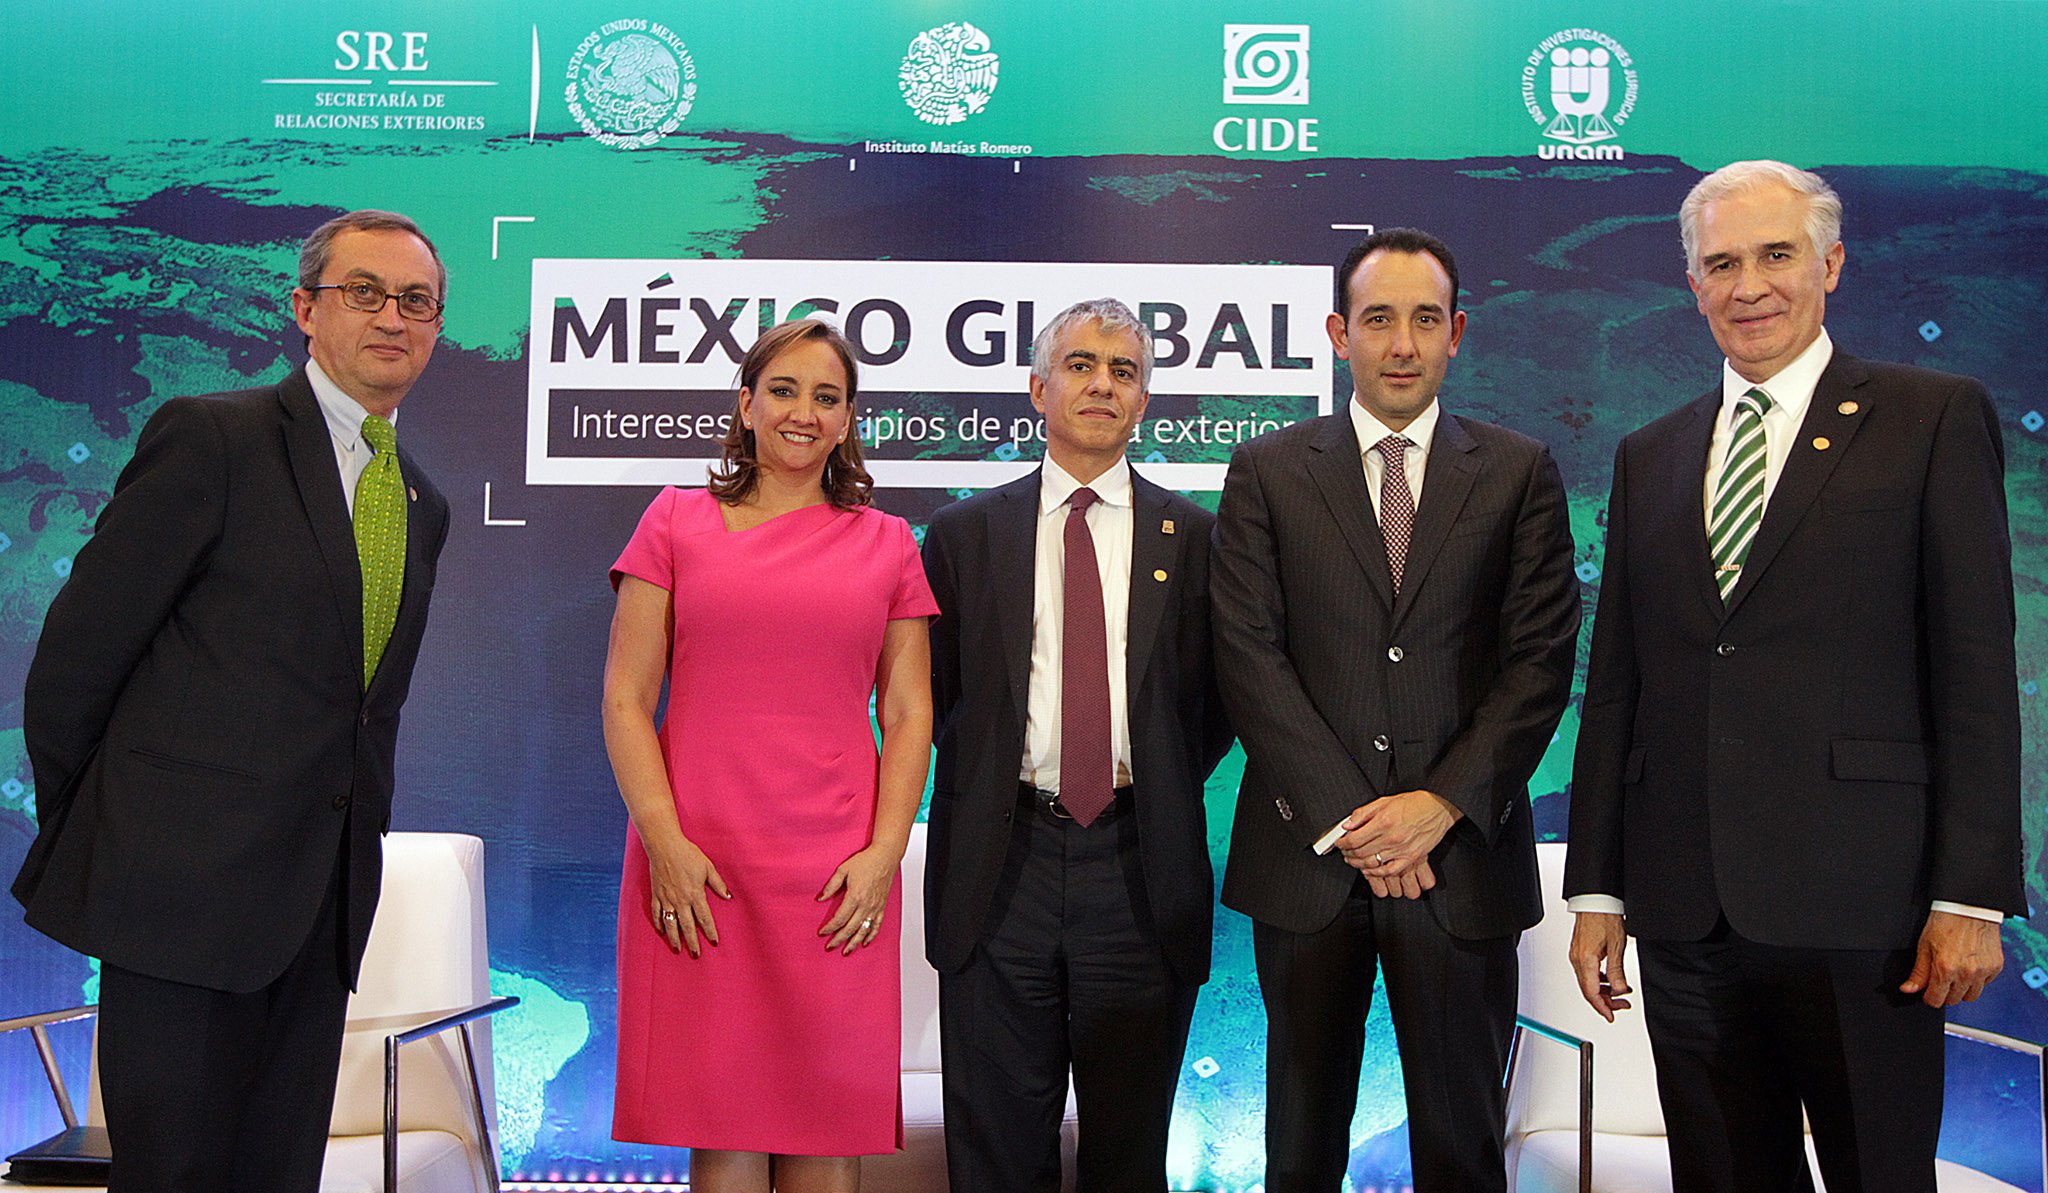 /cms/uploads/image/file/140516/Ceremonia_de_Clausura_del_Seminario_Internacional_M_xico_Global_02.jpg